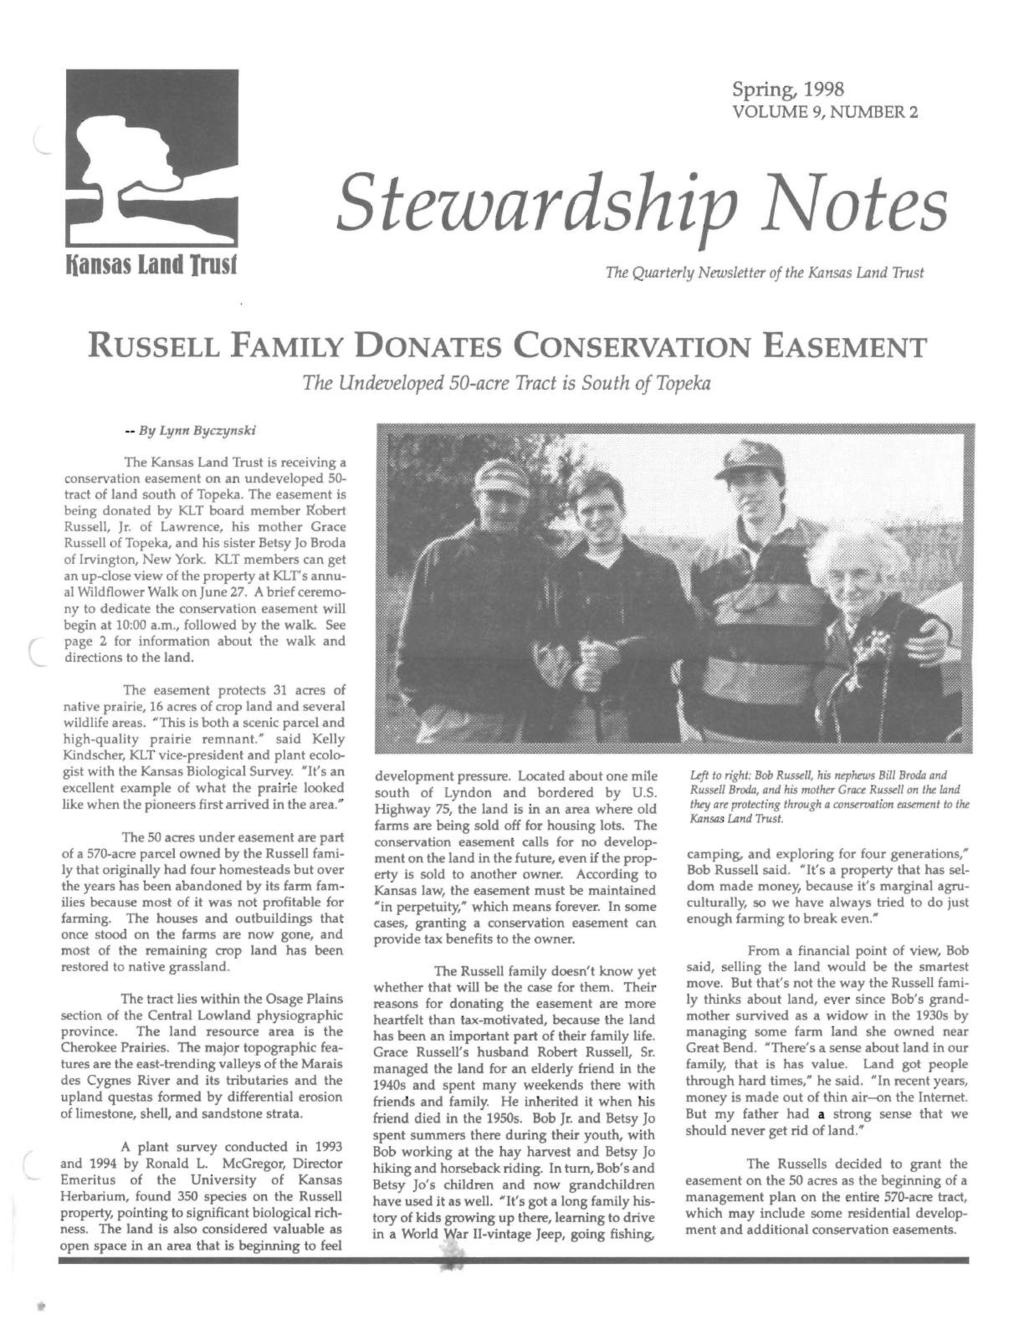 Spring, 1998 VOLUME 9, NUMBER 2 Stezvardship ~otes Kansas Land Trusf The Quarterly Newsletter of the Kansas Land Trust RUSSELL FAMILY DONATES CONSERVATION EASEMENT The Undeveloped 50-acre Tract is